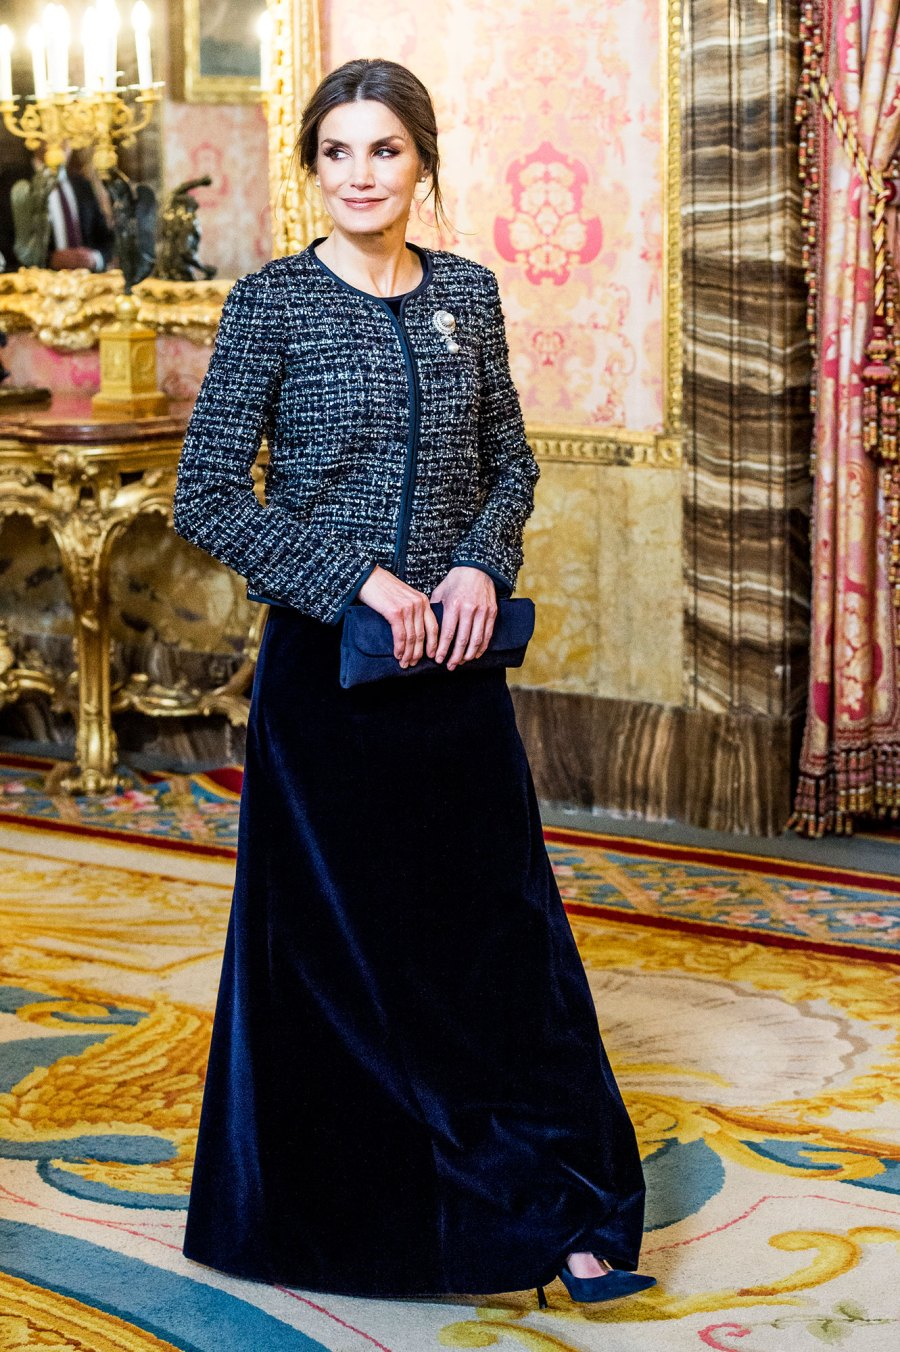 Queen Letizia Latest Outfits Show Why She's Such a Style Icon